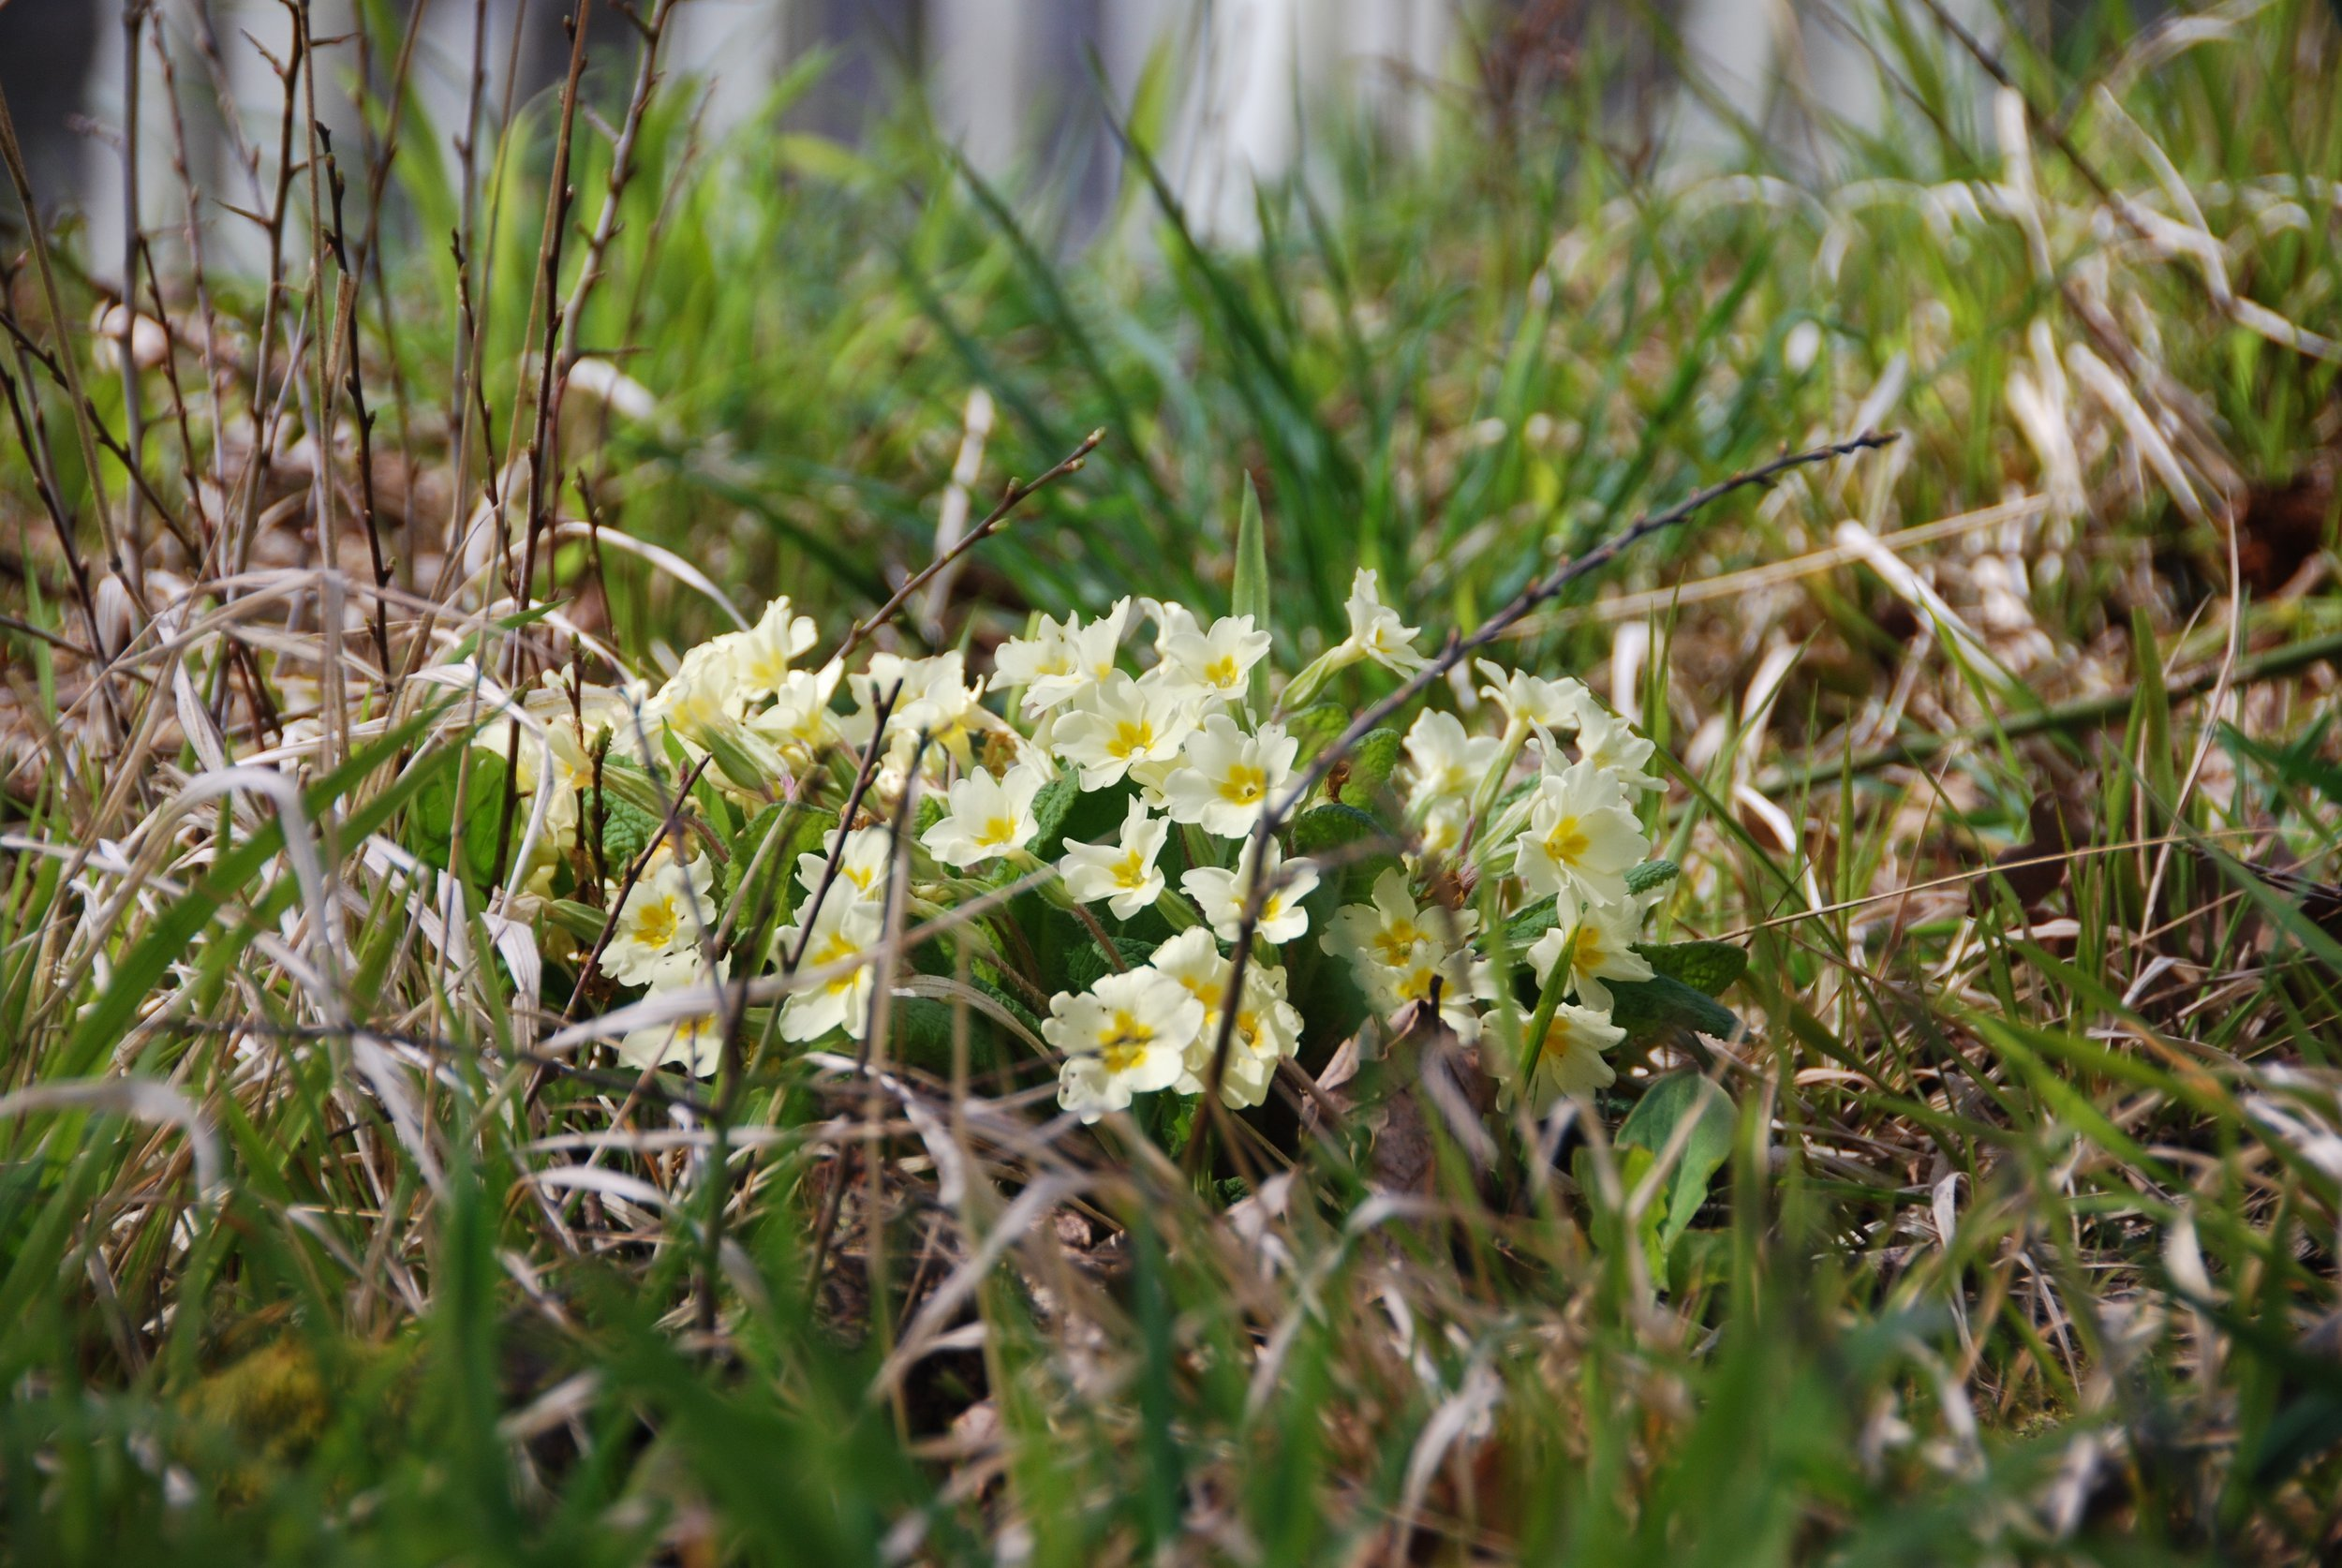 Wild primulas are also in bloom around the vineyard.